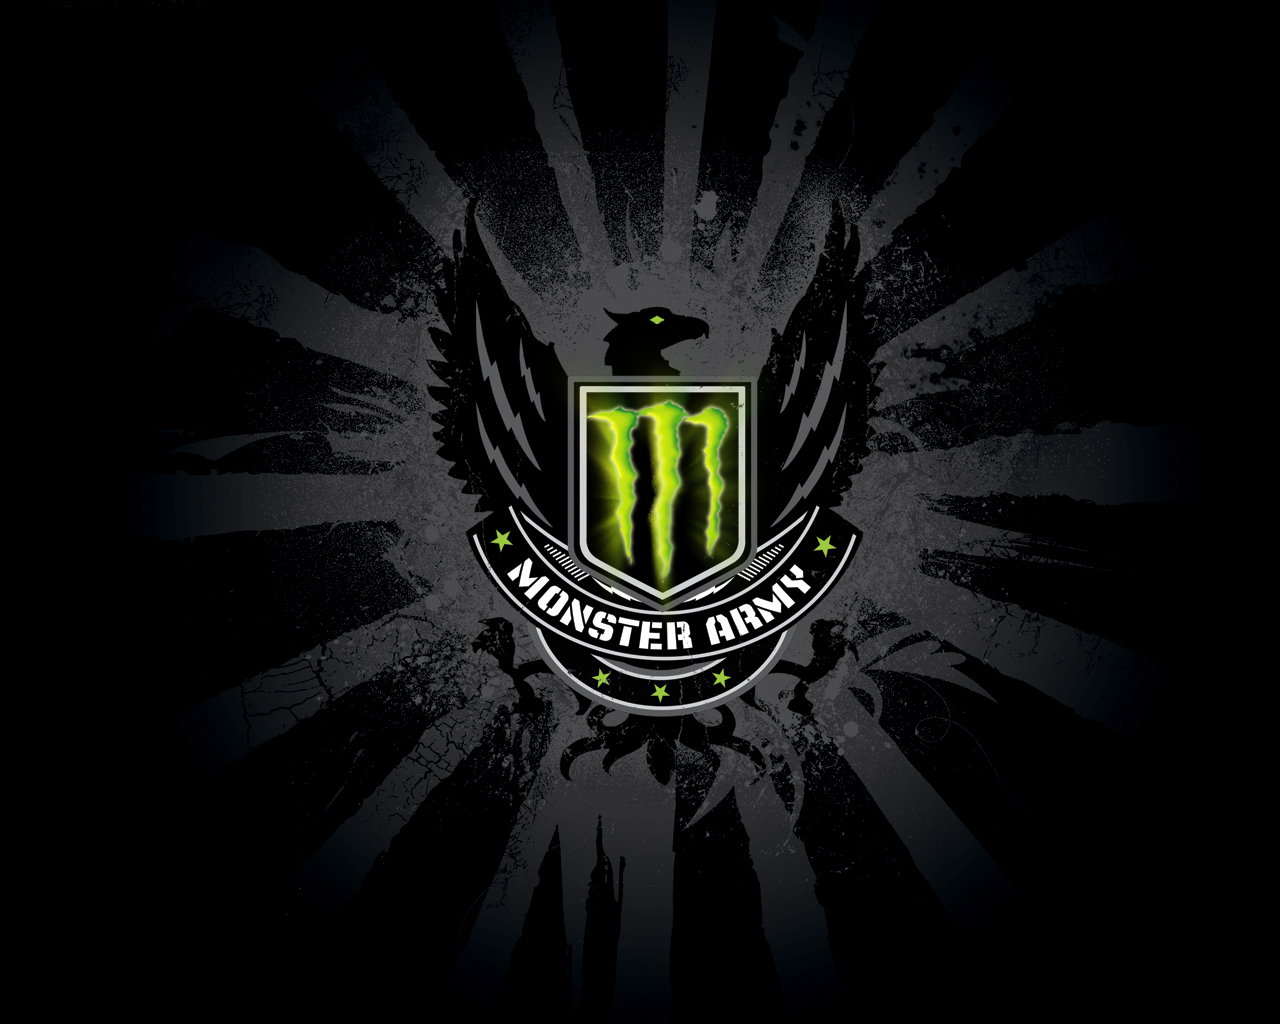 Monster Army logo with a black eagle